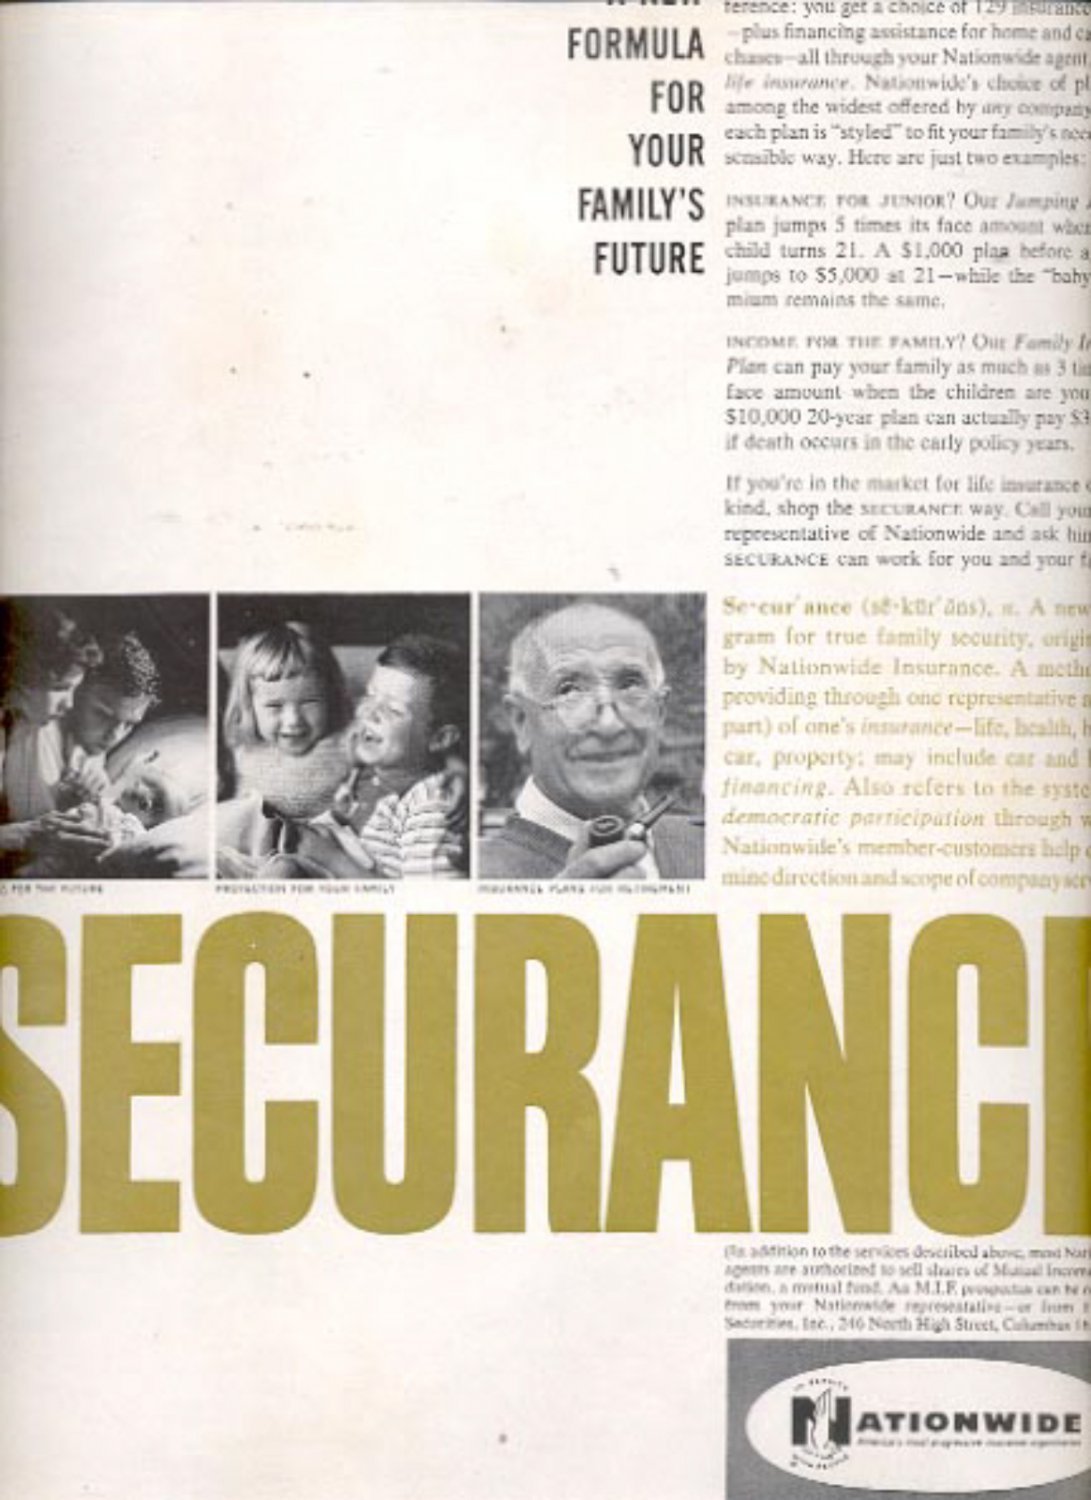 1960 Nationwide Securance   ad (#5446)